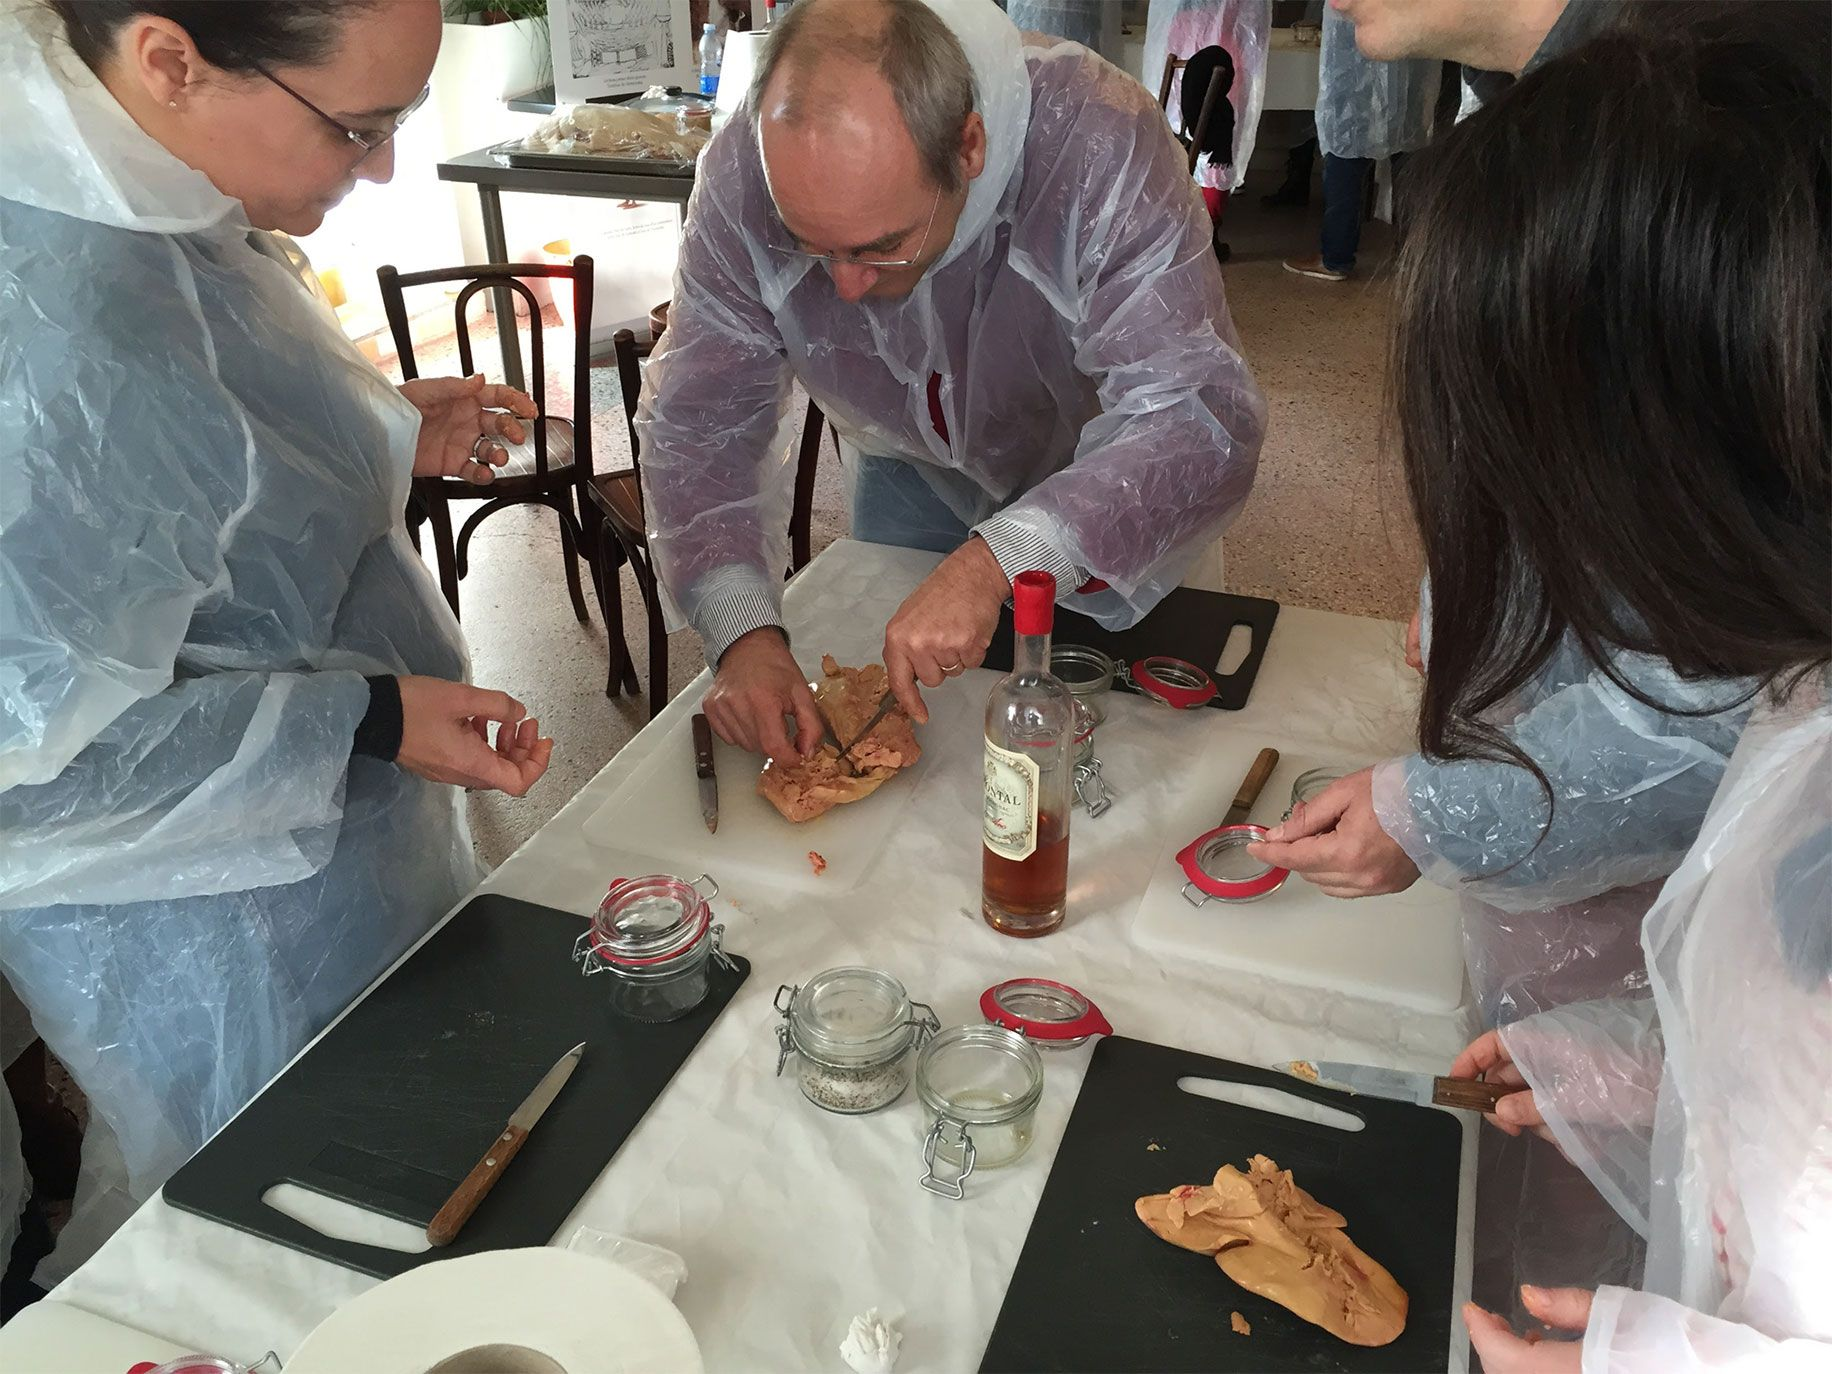 A workshop at the Villa Cahuzac hotel and restaurant in Gimont where attendees learn how to prepare duck liver to make foie gras.